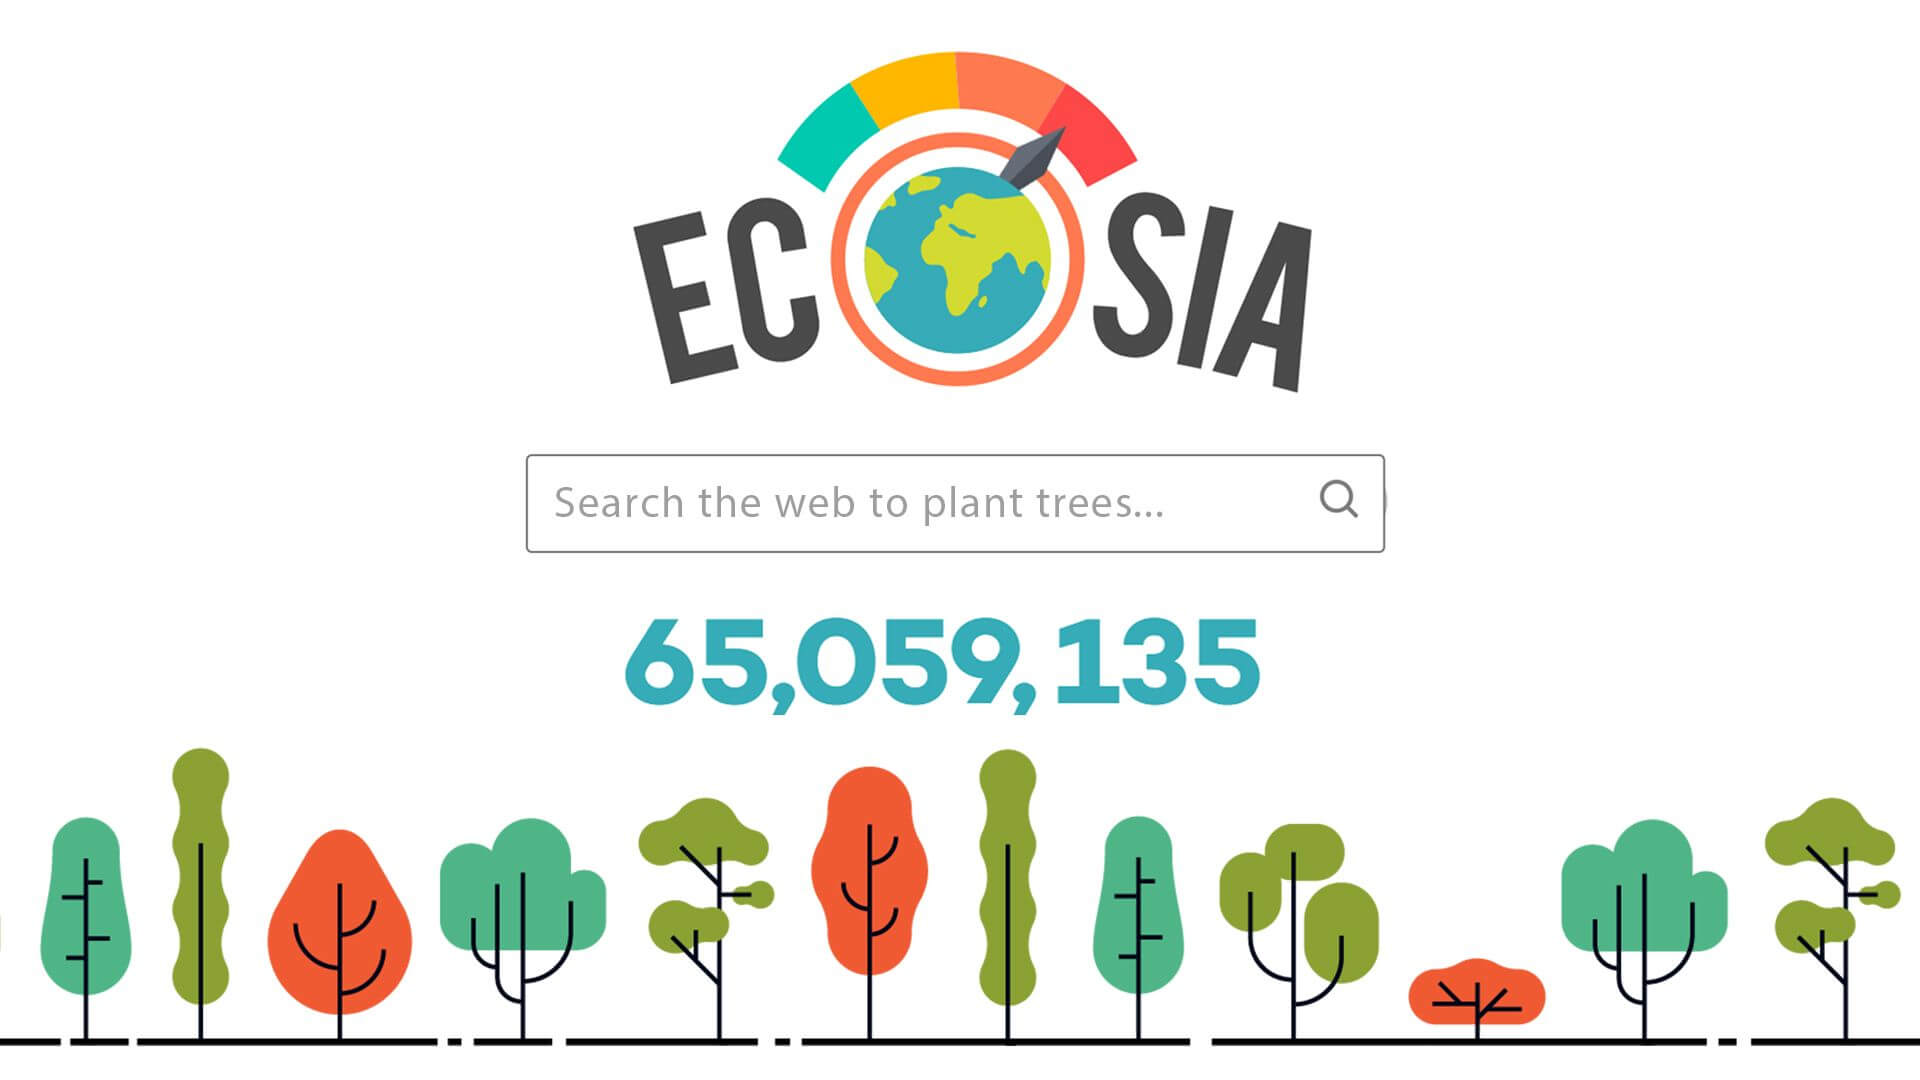 You Can Help Plant Trees Just By Surfing The Internet With Ecosia ...